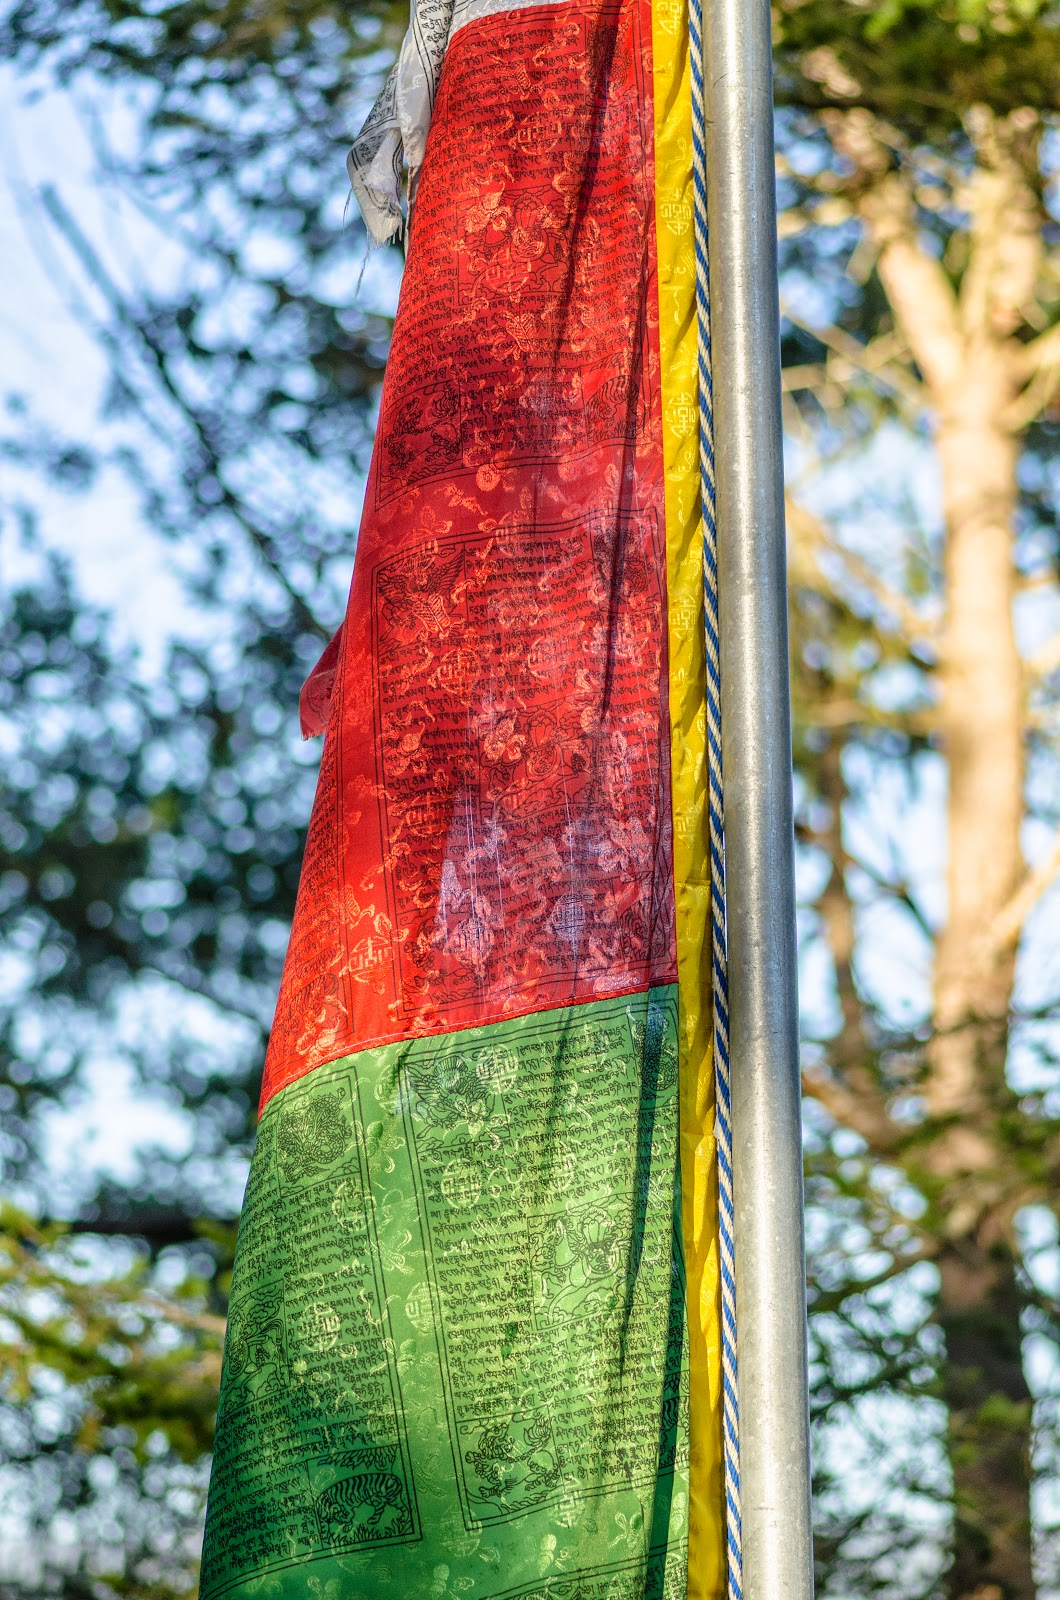 Prayer flag at Kachoe Dechen Ling. Photo by Chris Majors.